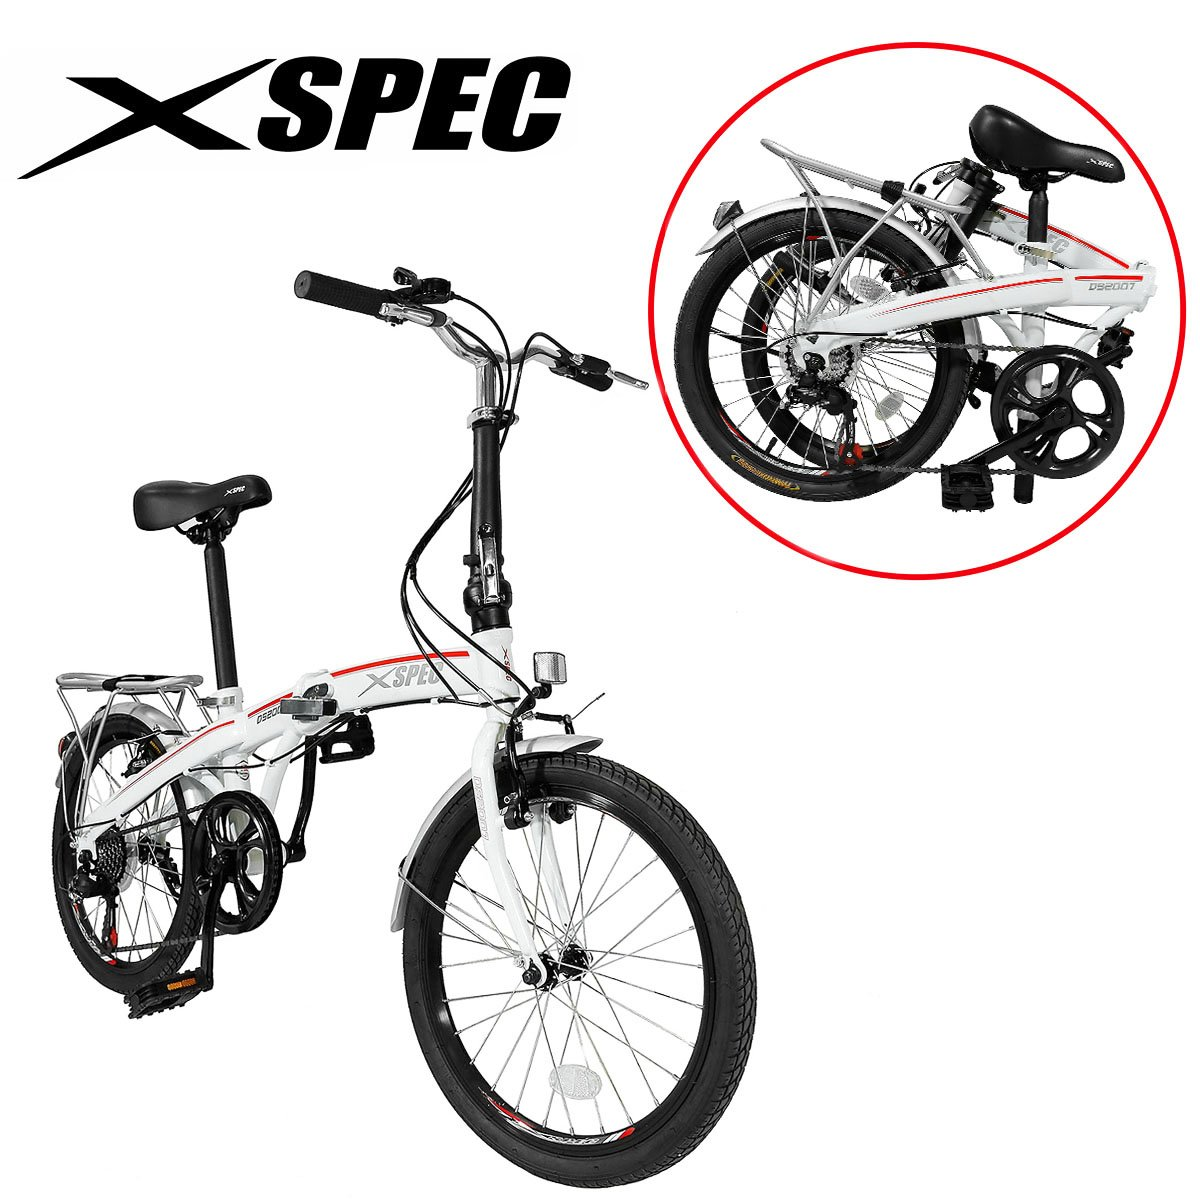 Xspec 20'' 7 Speed City Folding Mini Compact Bike Bicycle Urban Commuter Shimano White